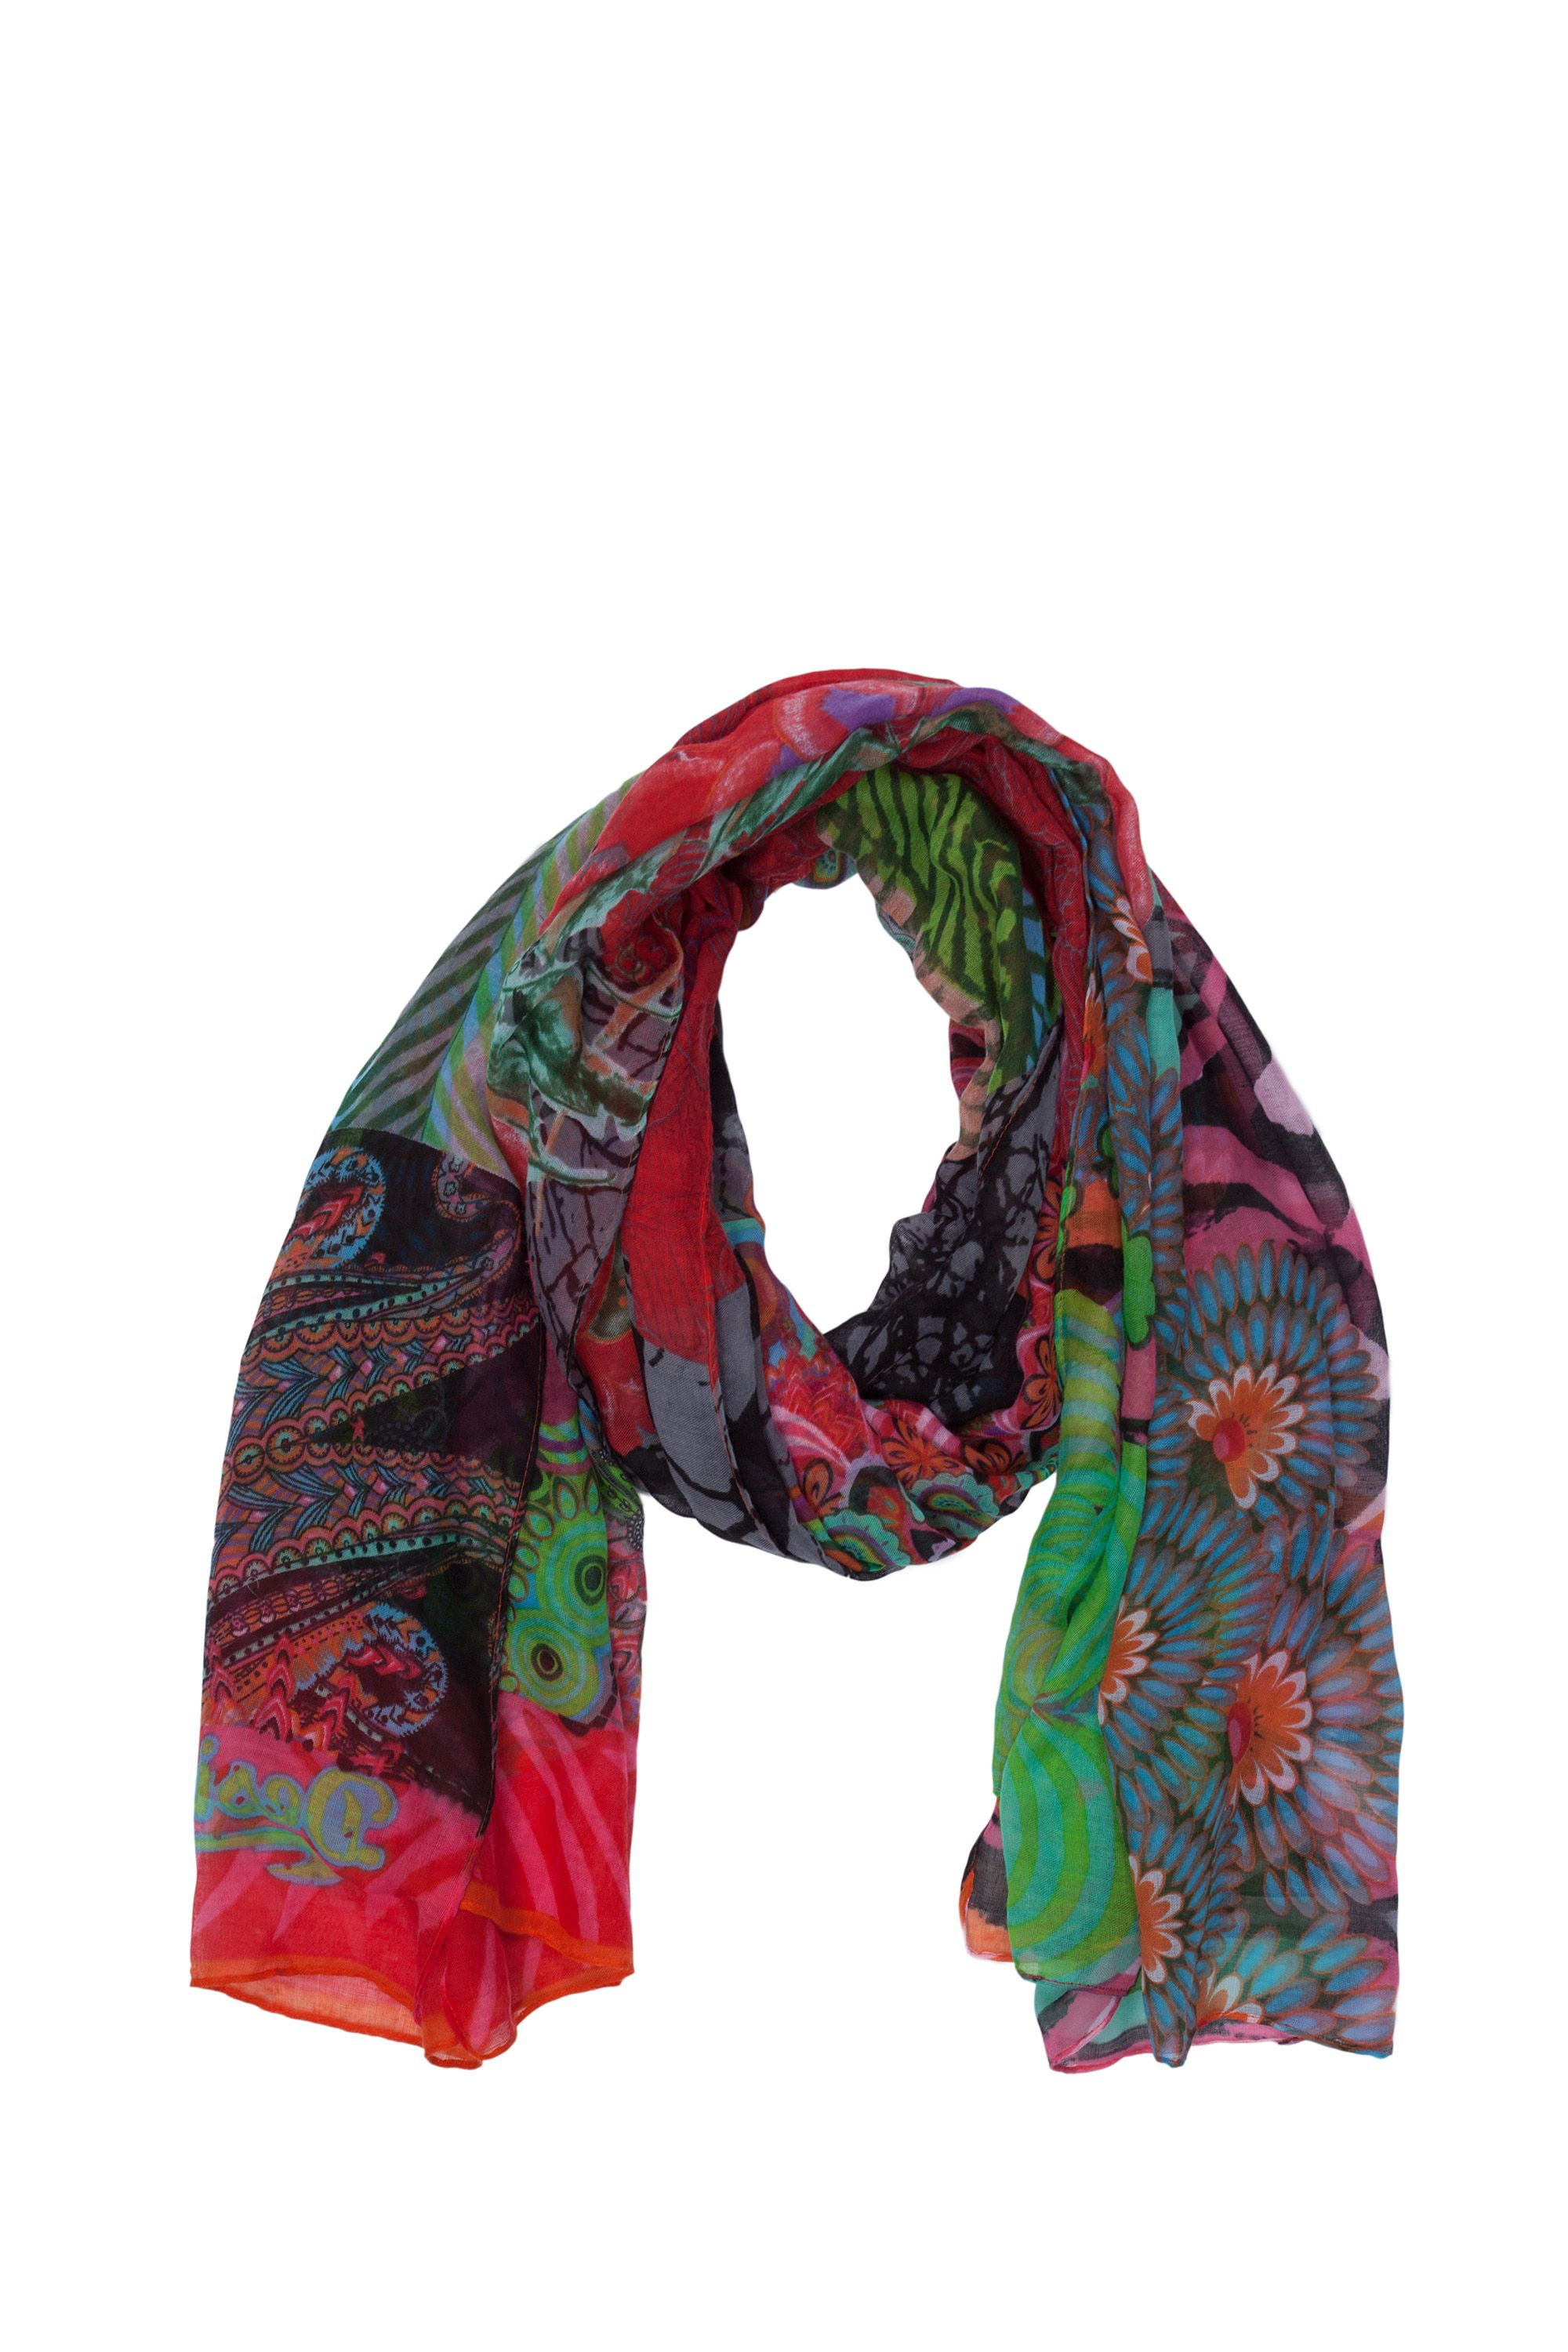 Seduccio carry printed scarf